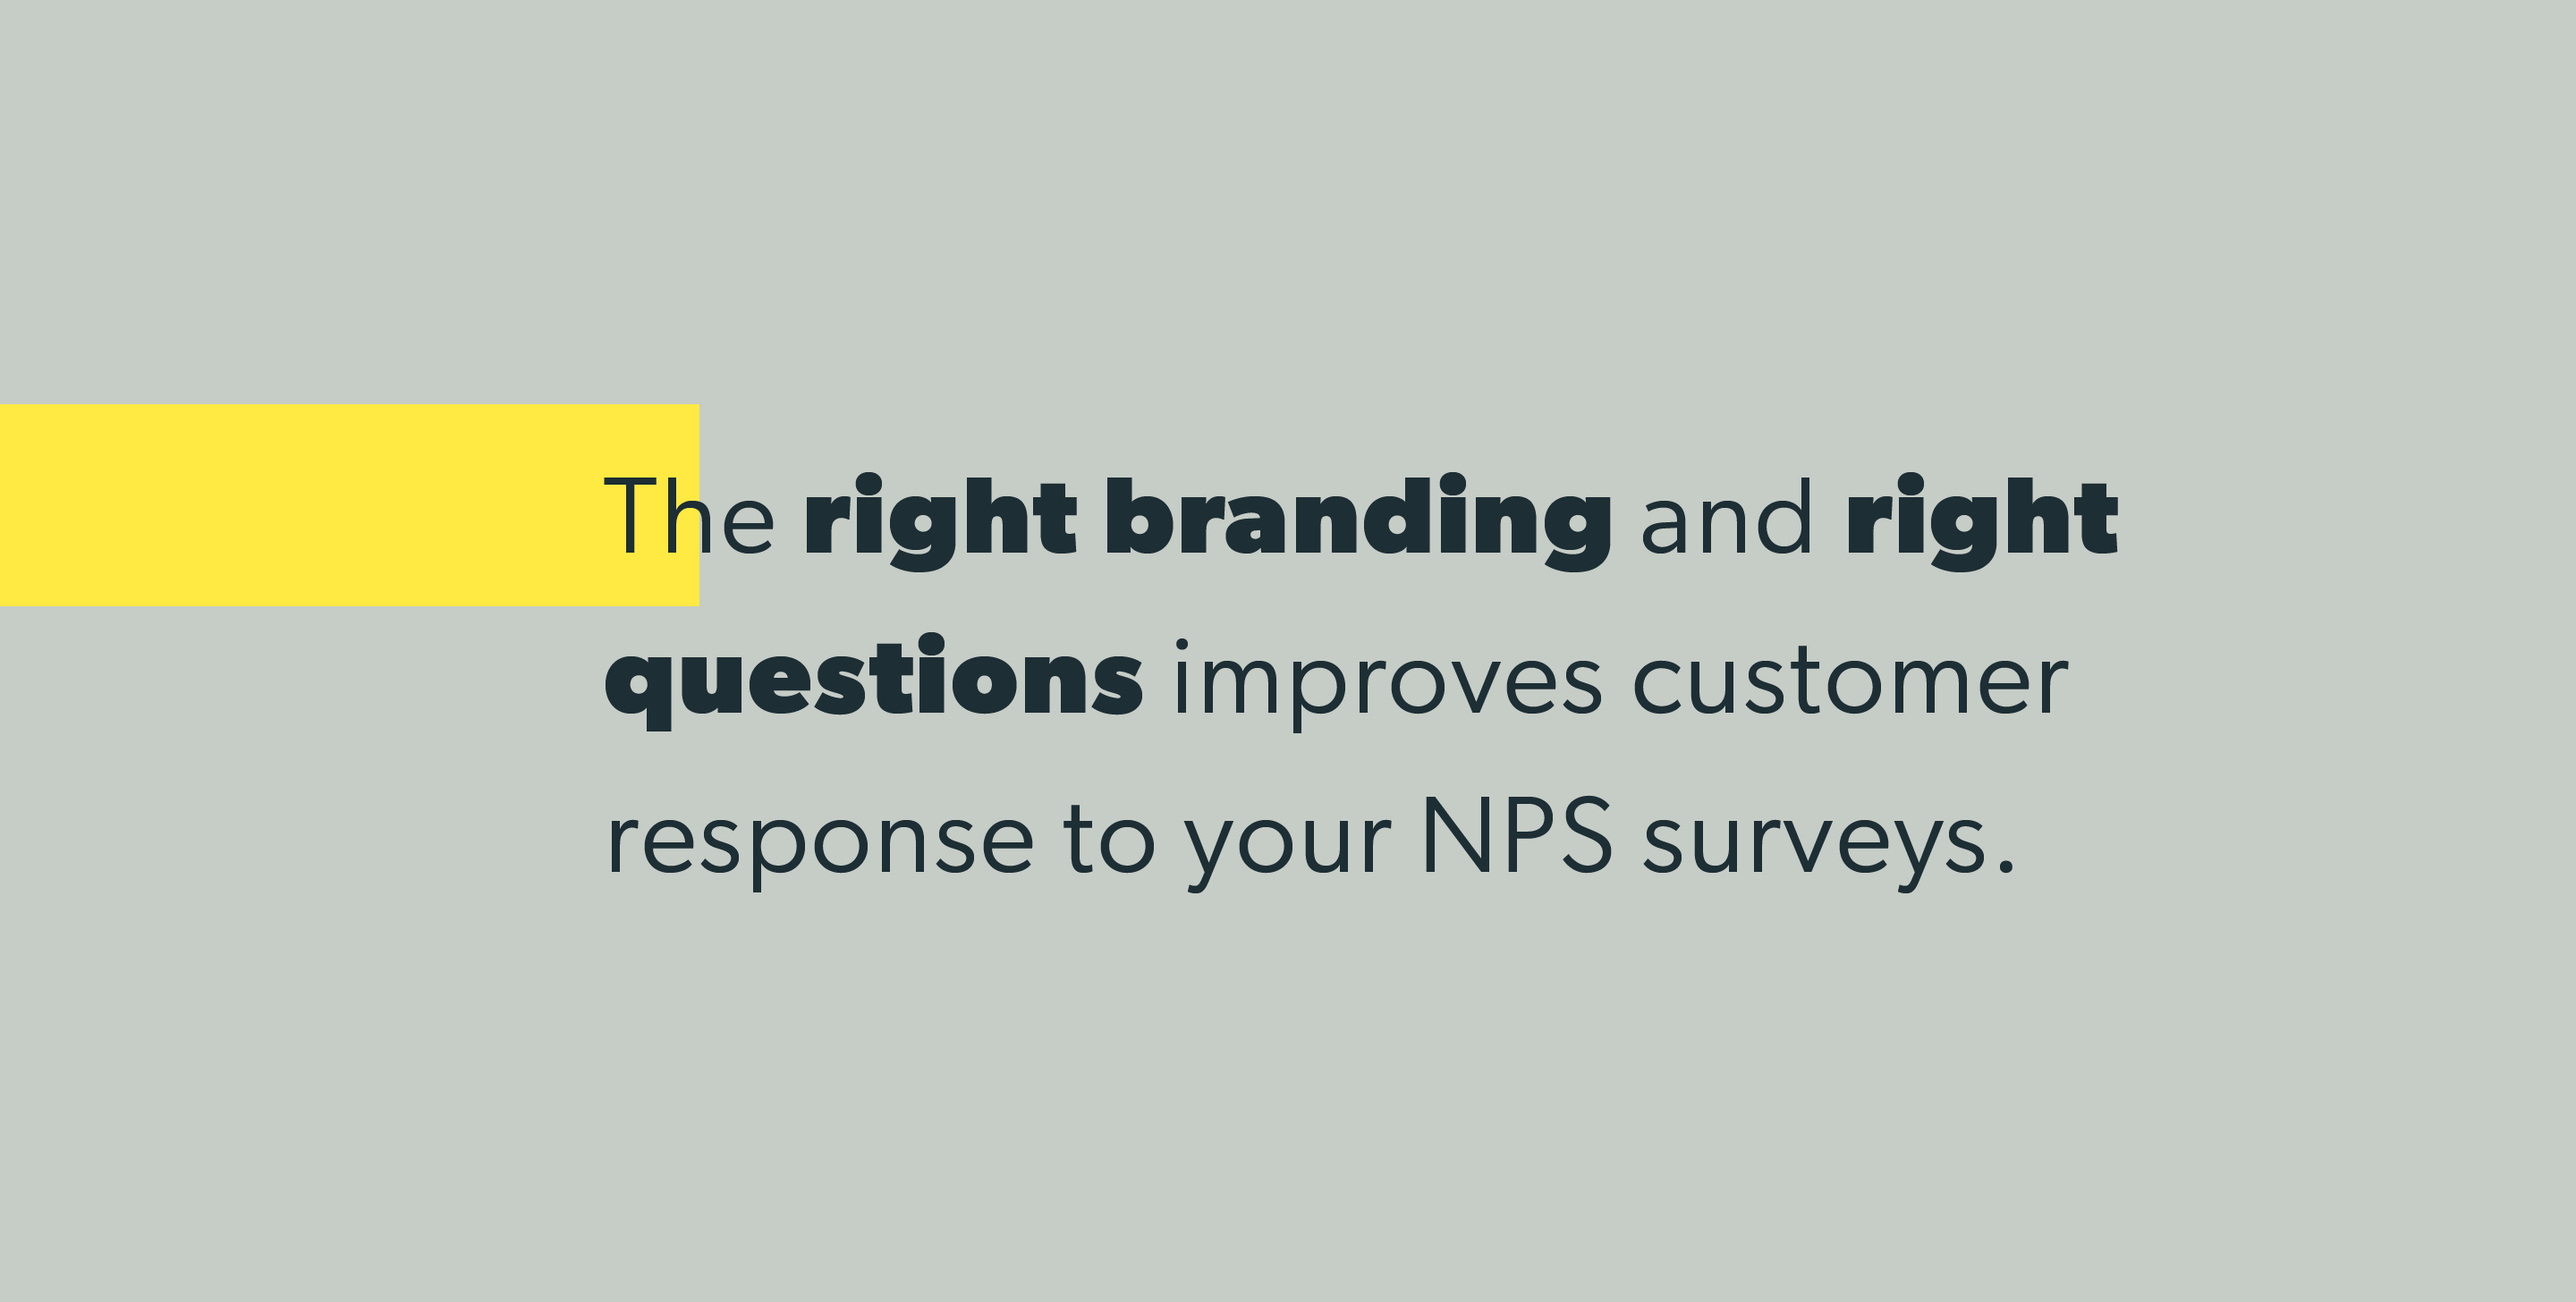 The right branding and right questions improves customer response to your NPS surveys.